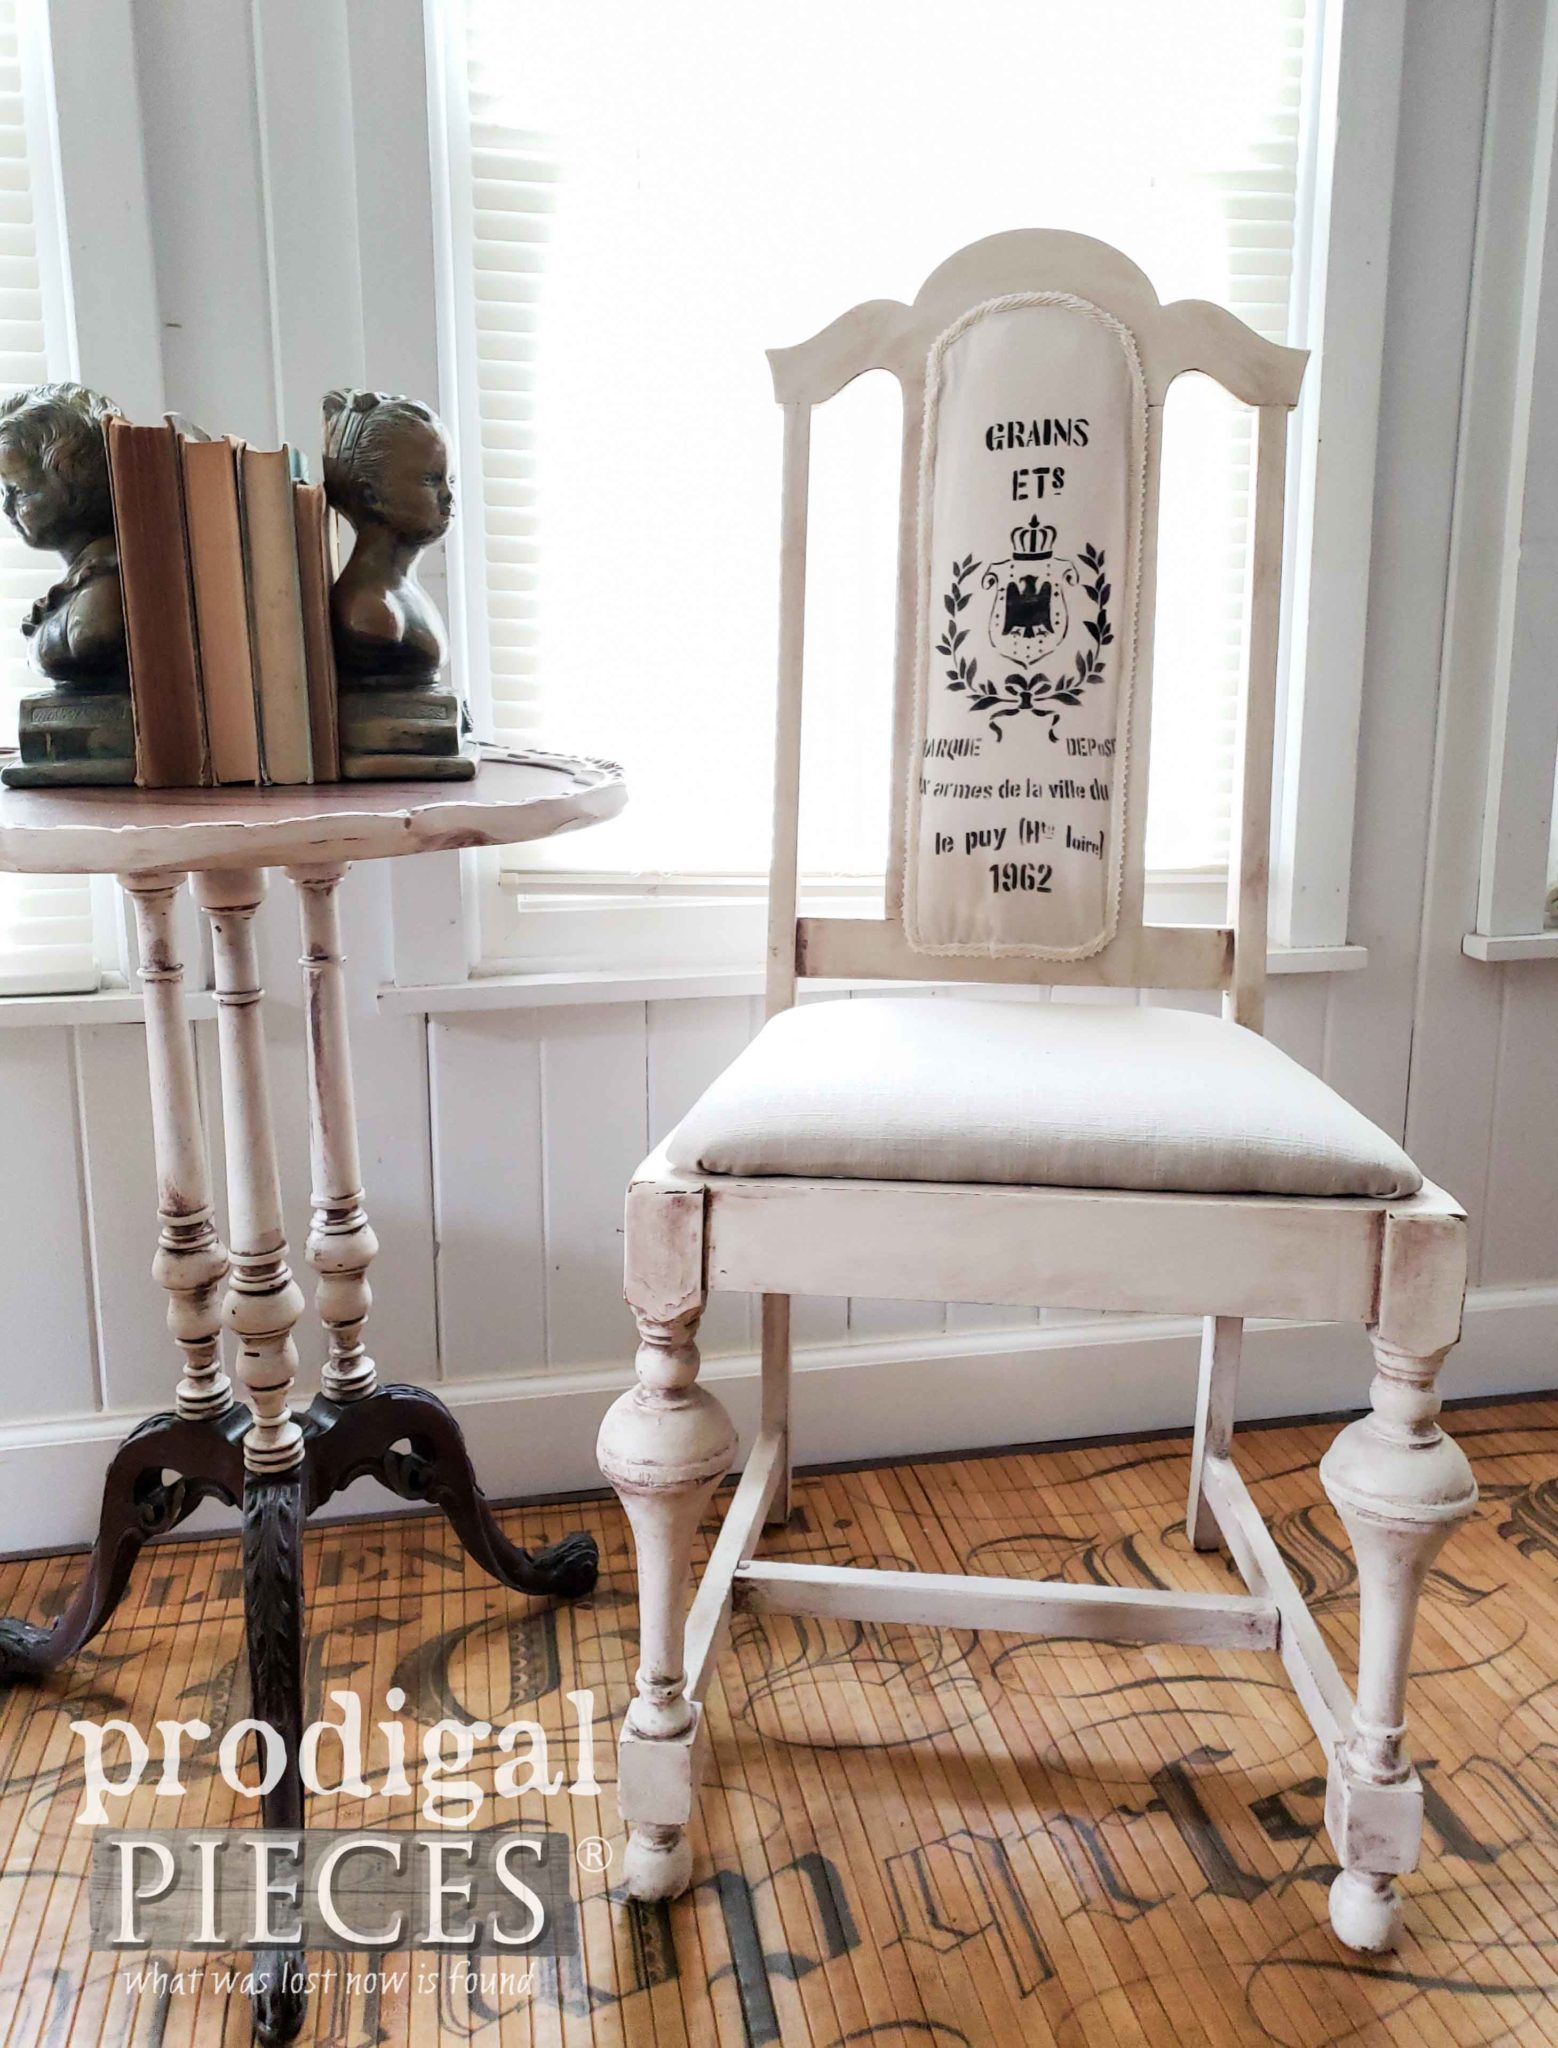 French Farmhouse Dining Chair with Grain Sack Details by Larissa of Prodigal Pieces | prodigalpieces.com #prodigalpieces #diy #home #furniture #farmhouse #homedecor